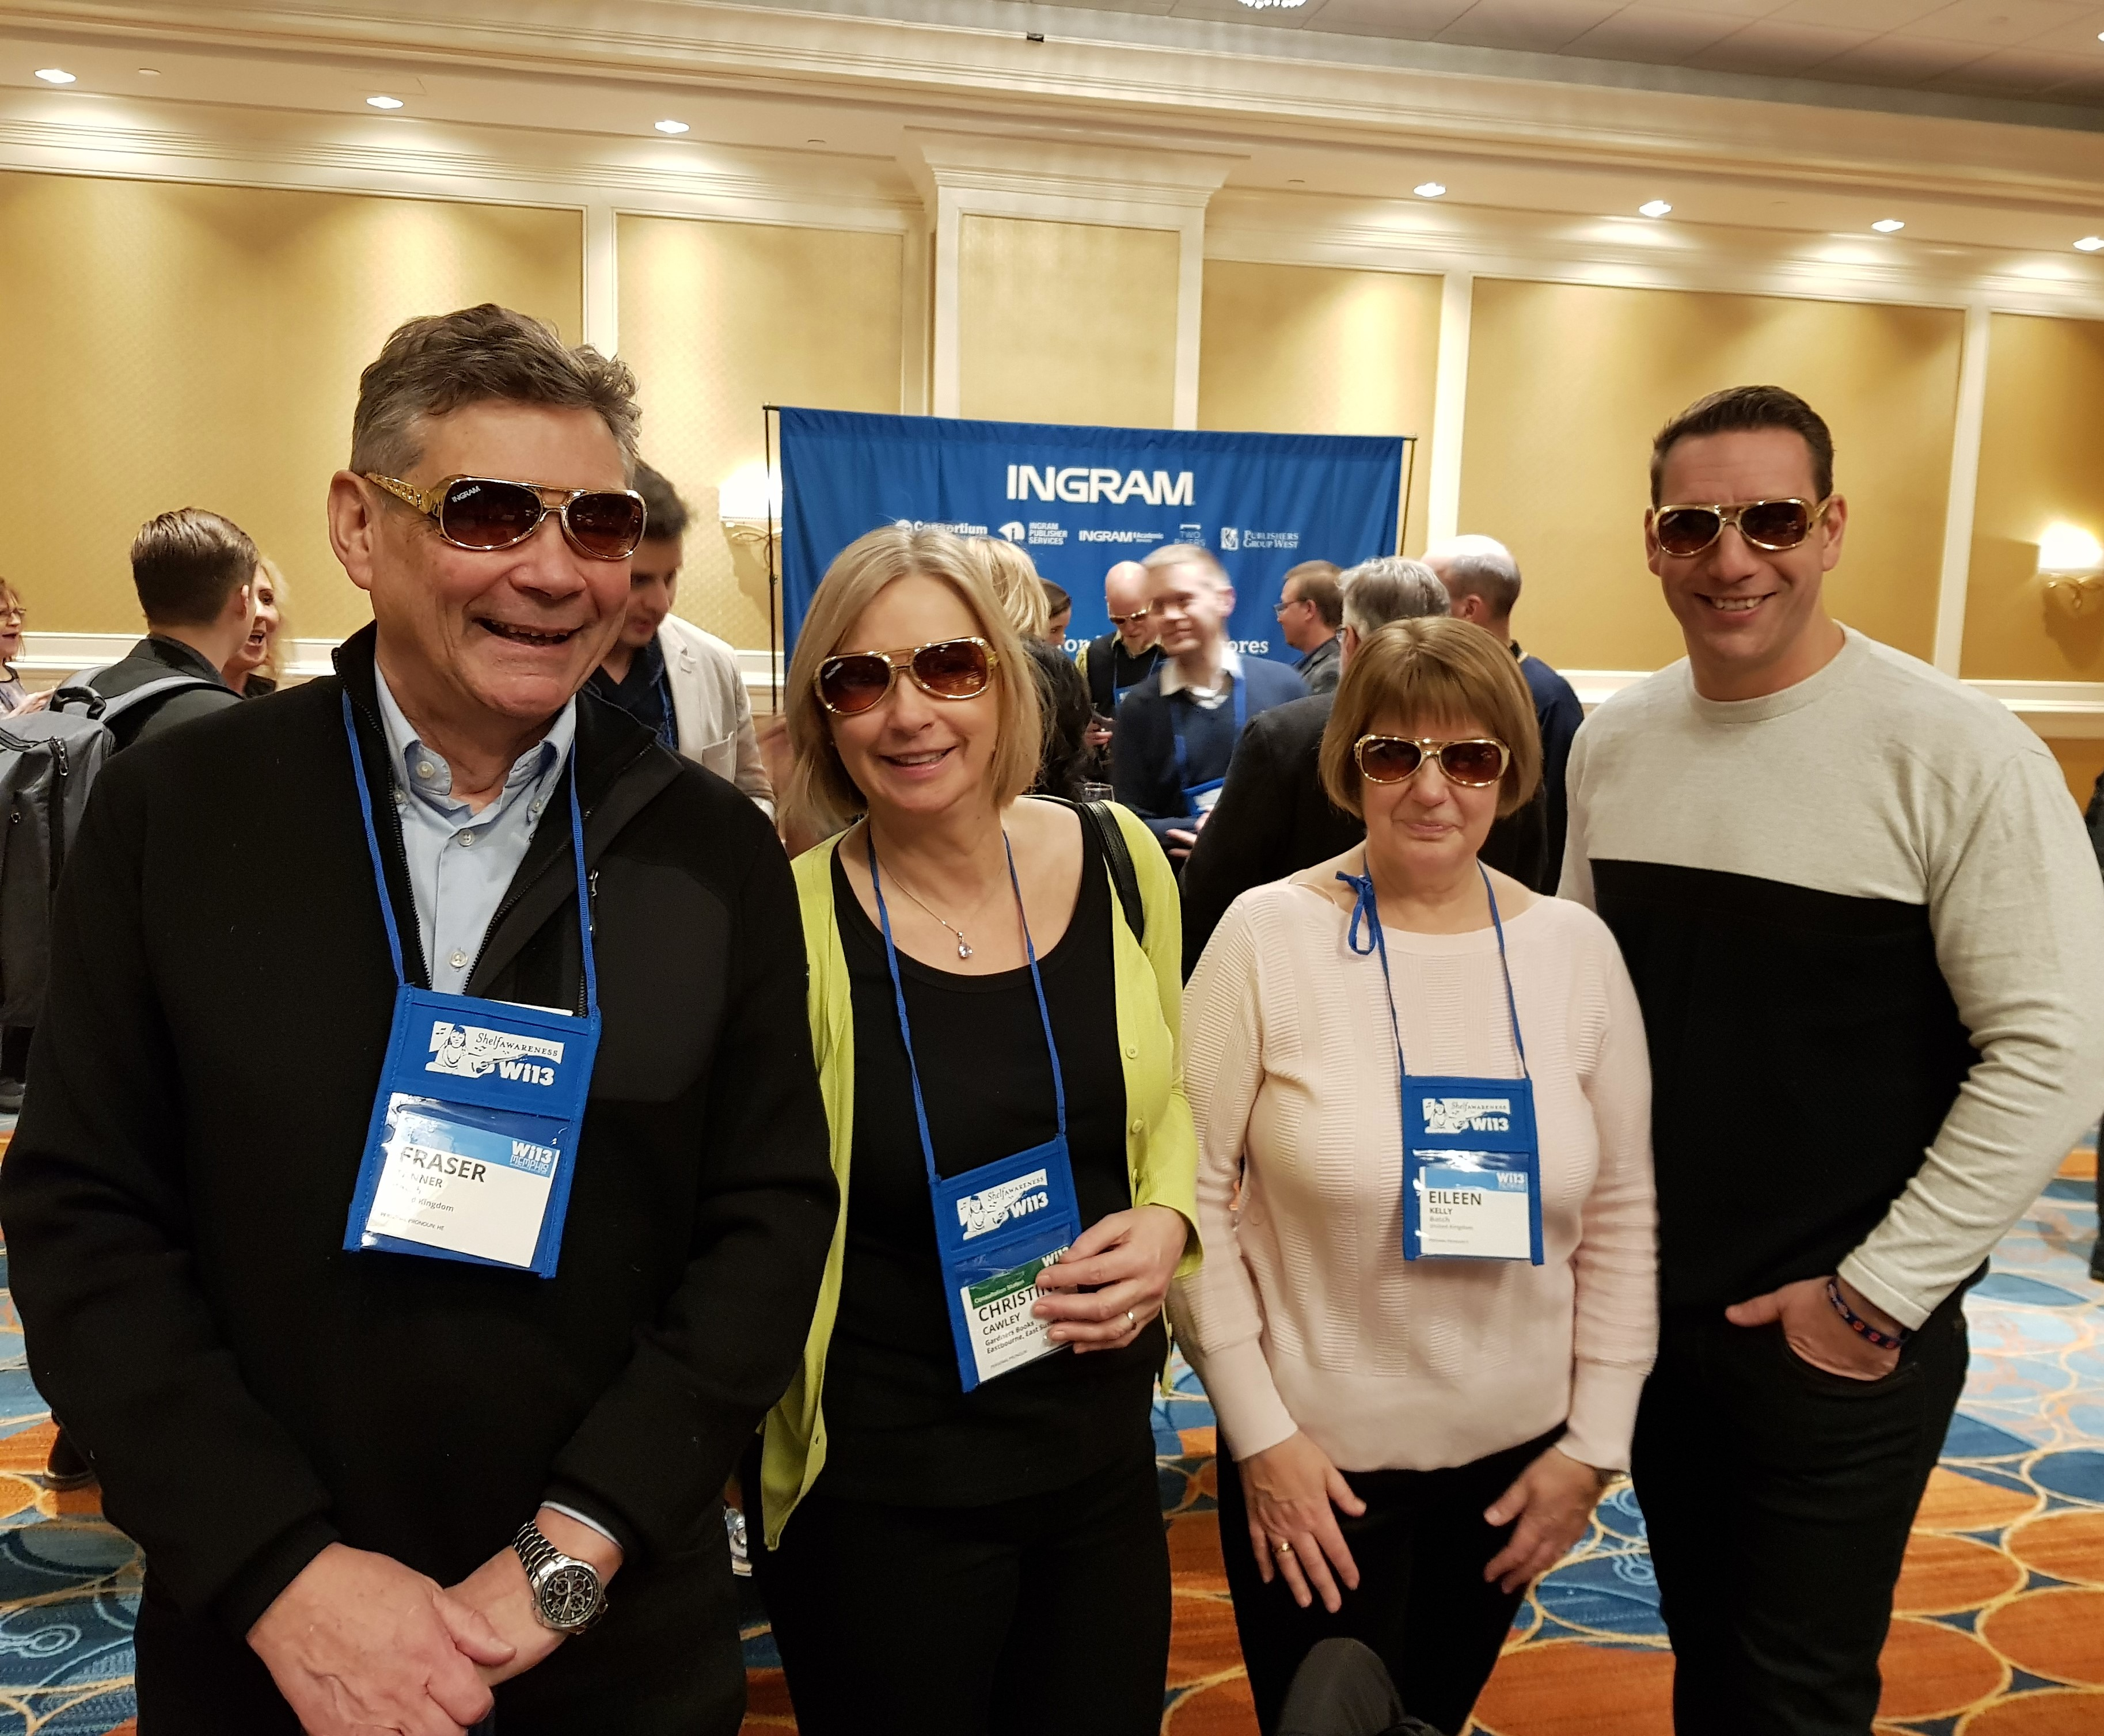 International guests enjoy their new sunglasses at the Ingram reception on Tuesday.